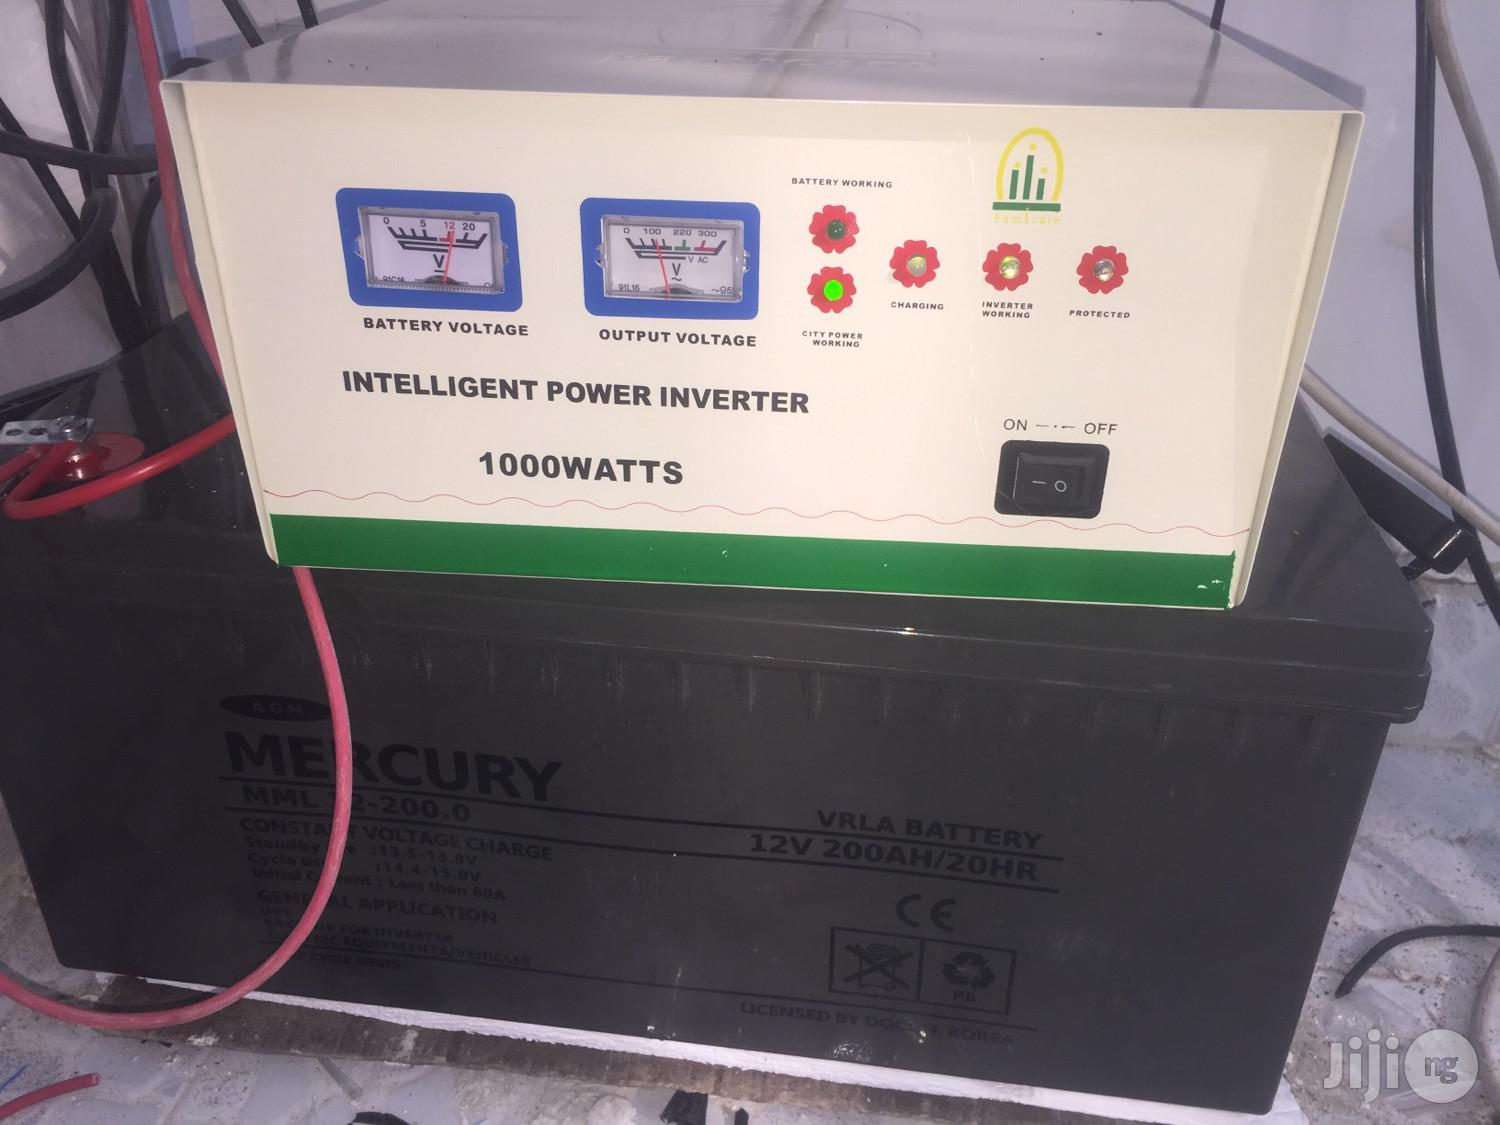 Rugged Korean Deep Circle Inverter Batteries | Electrical Equipment for sale in Yaba, Lagos State, Nigeria